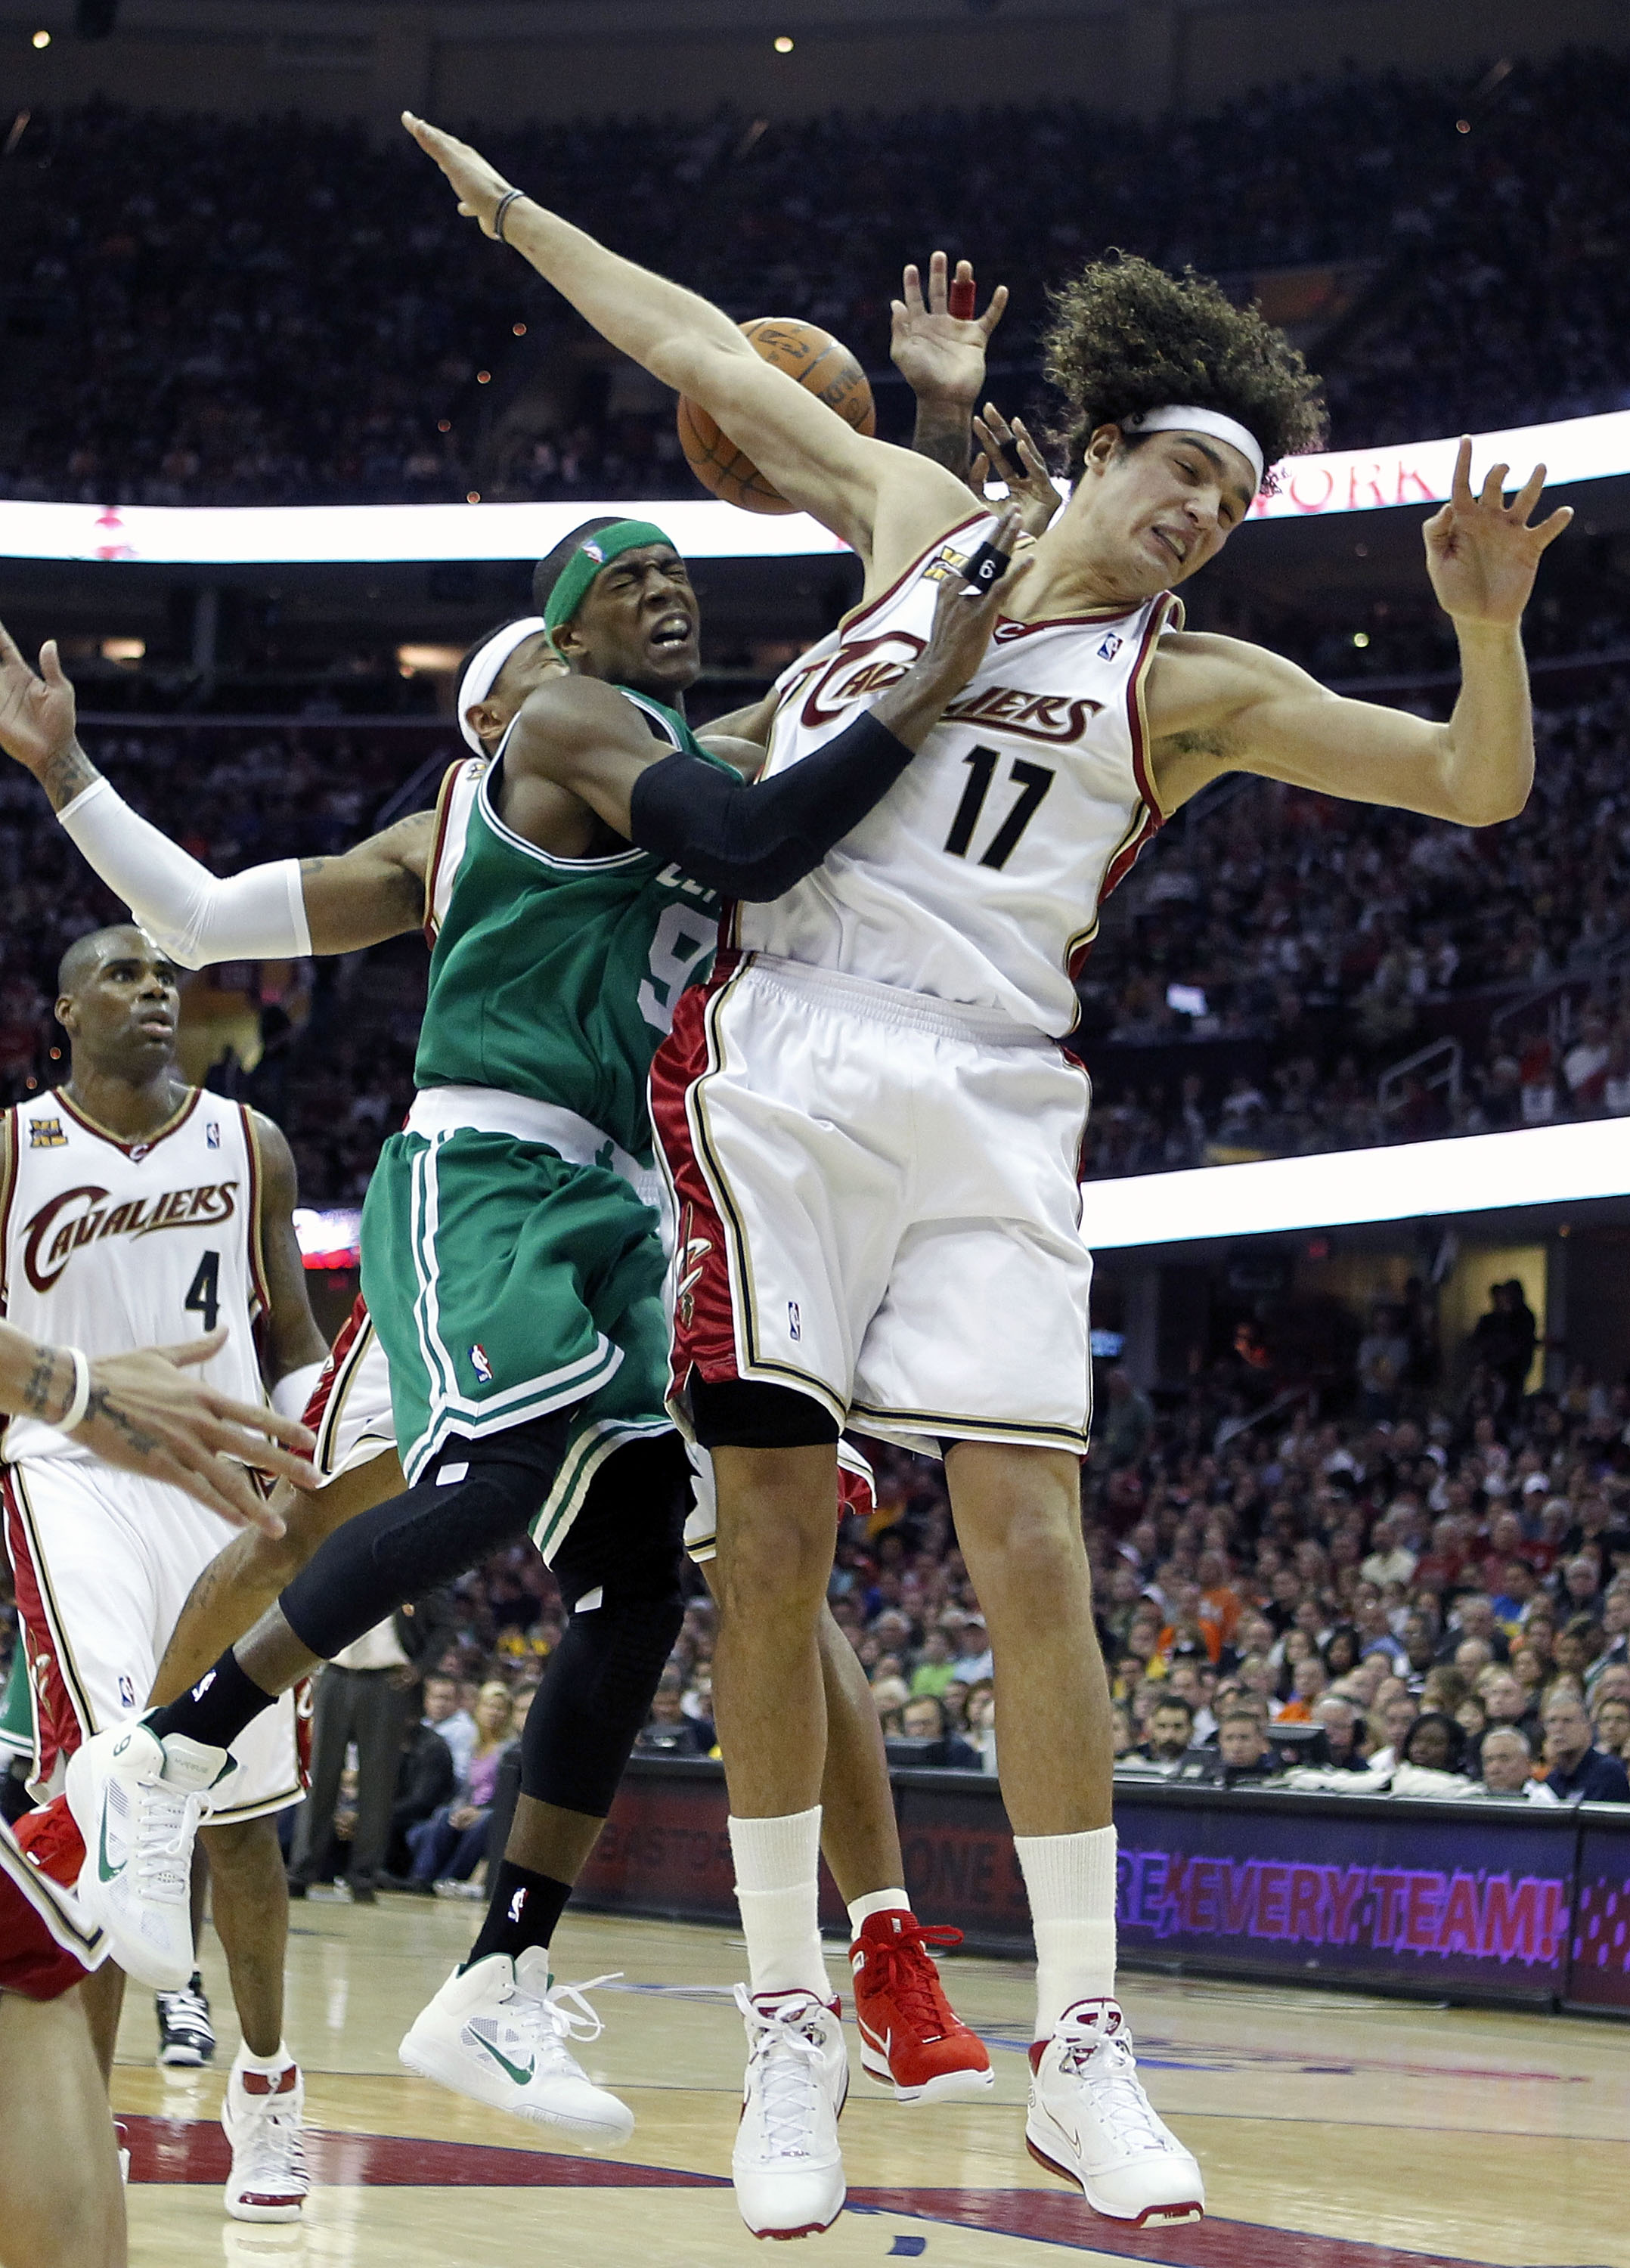 CLEVELAND - MAY 01:  Rajon Rondo #9 of the Boston Celtics tries to get a shot off between Mo Williams #2 and Anderson Varejao #17 of the Cleveland Cavaliers in Game One of the Eastern Conference Semifinals during the 2010 NBA Playoffs at Quicken Loans Are